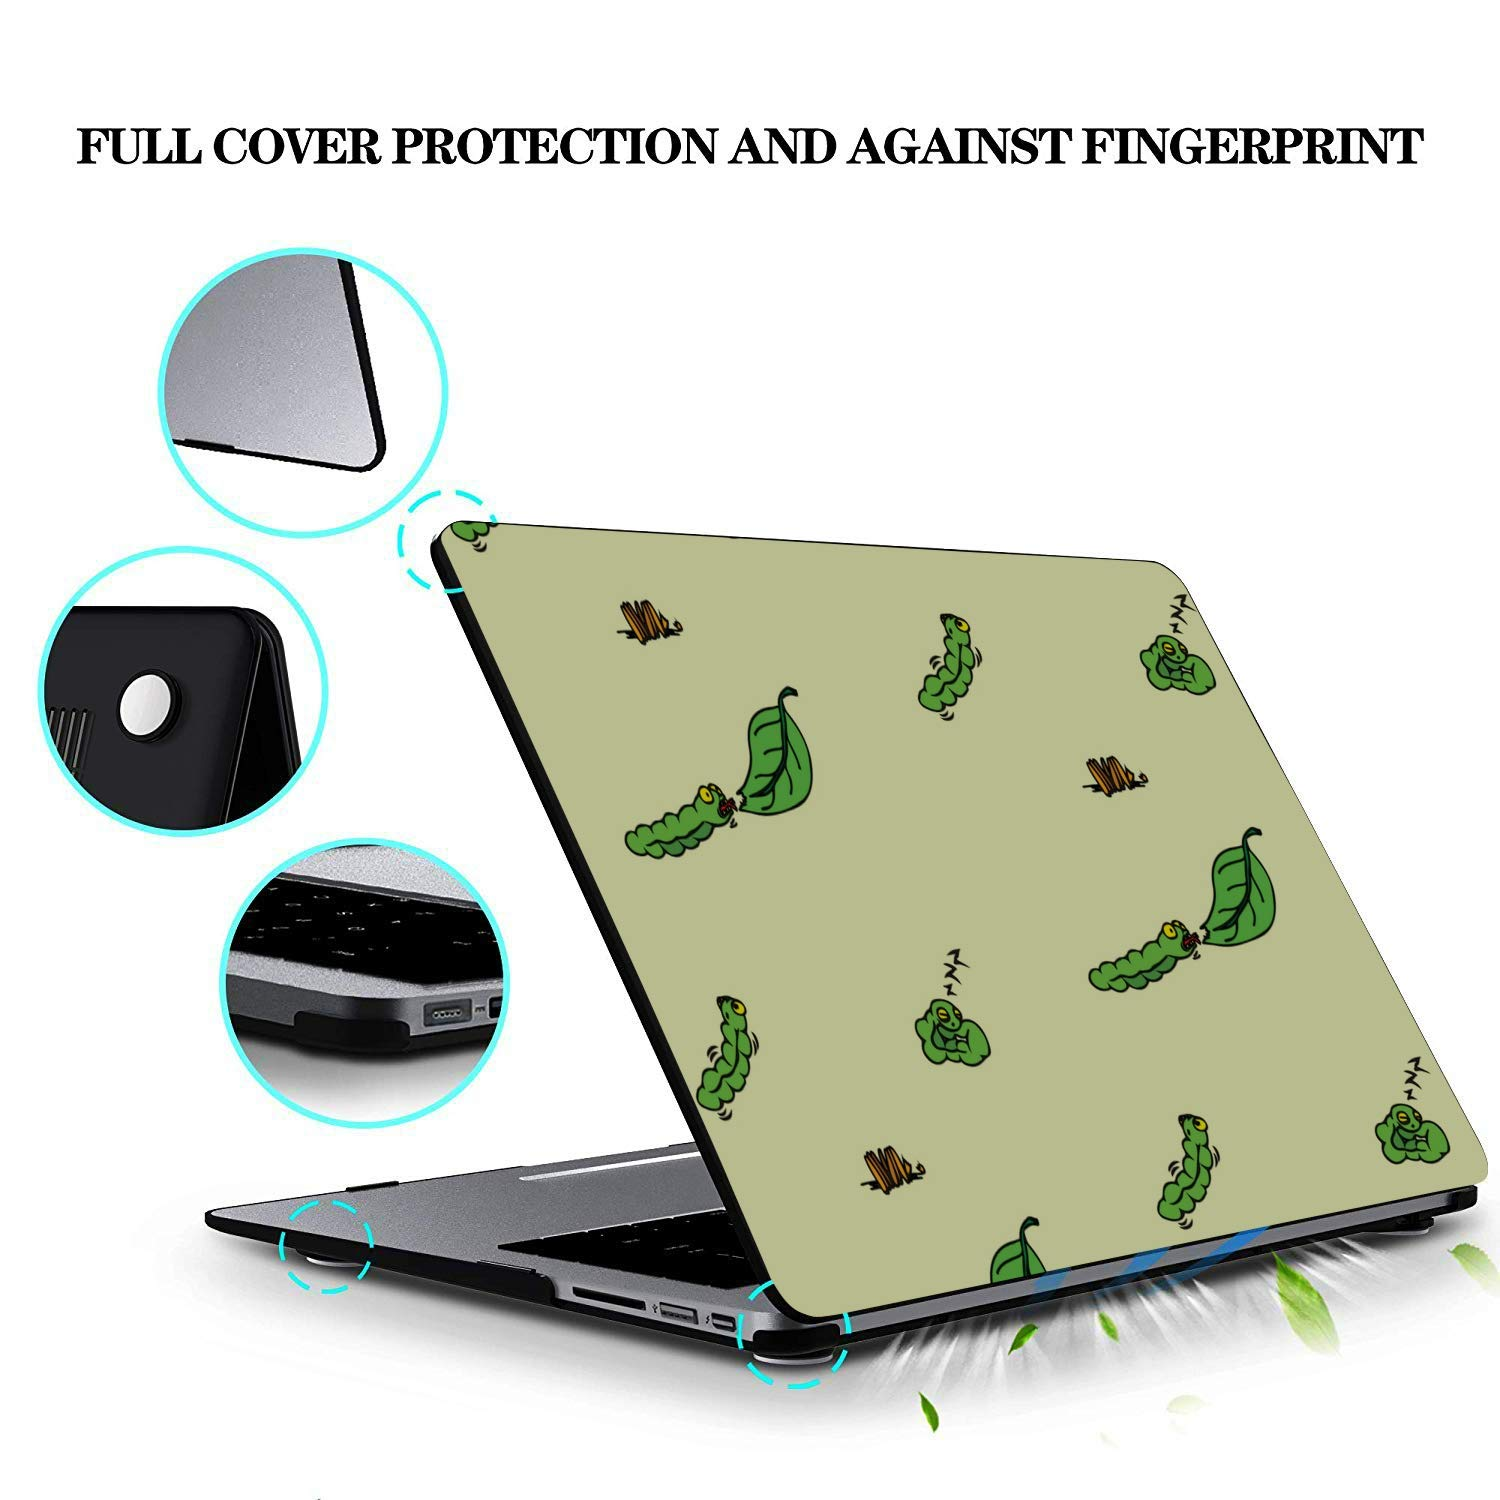 Mac Cover Small Cute Cartoon Reptile Silkworm Plastic Hard Shell Compatible Mac Air 11 Pro 13 15 Case for Mac Protection for MacBook 2016-2019 Version